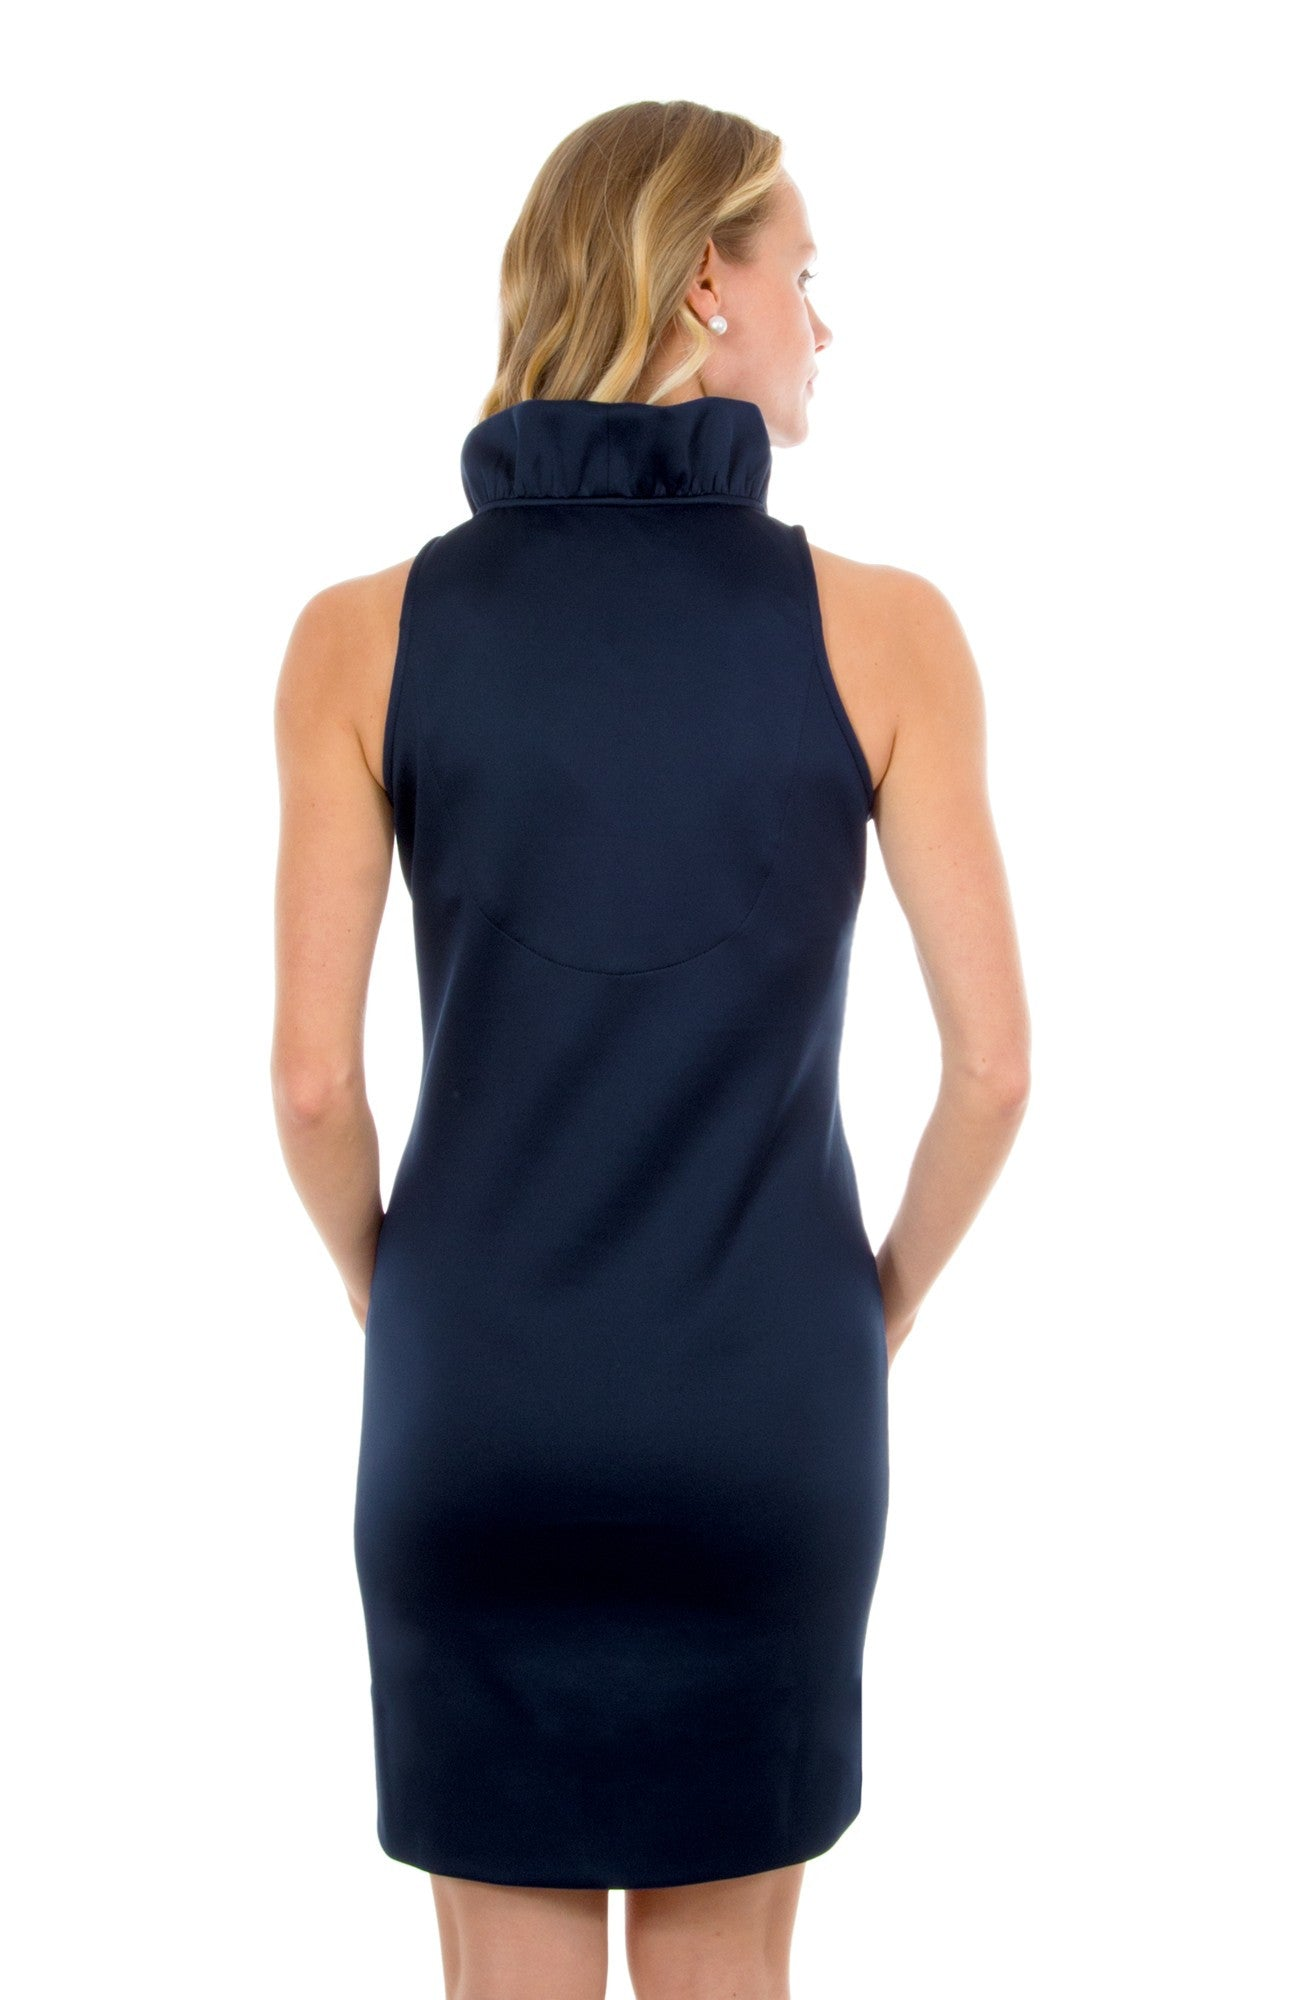 Gretchen Scott Ruff Neck Sleeveless Jersey Dress - Solid Navy